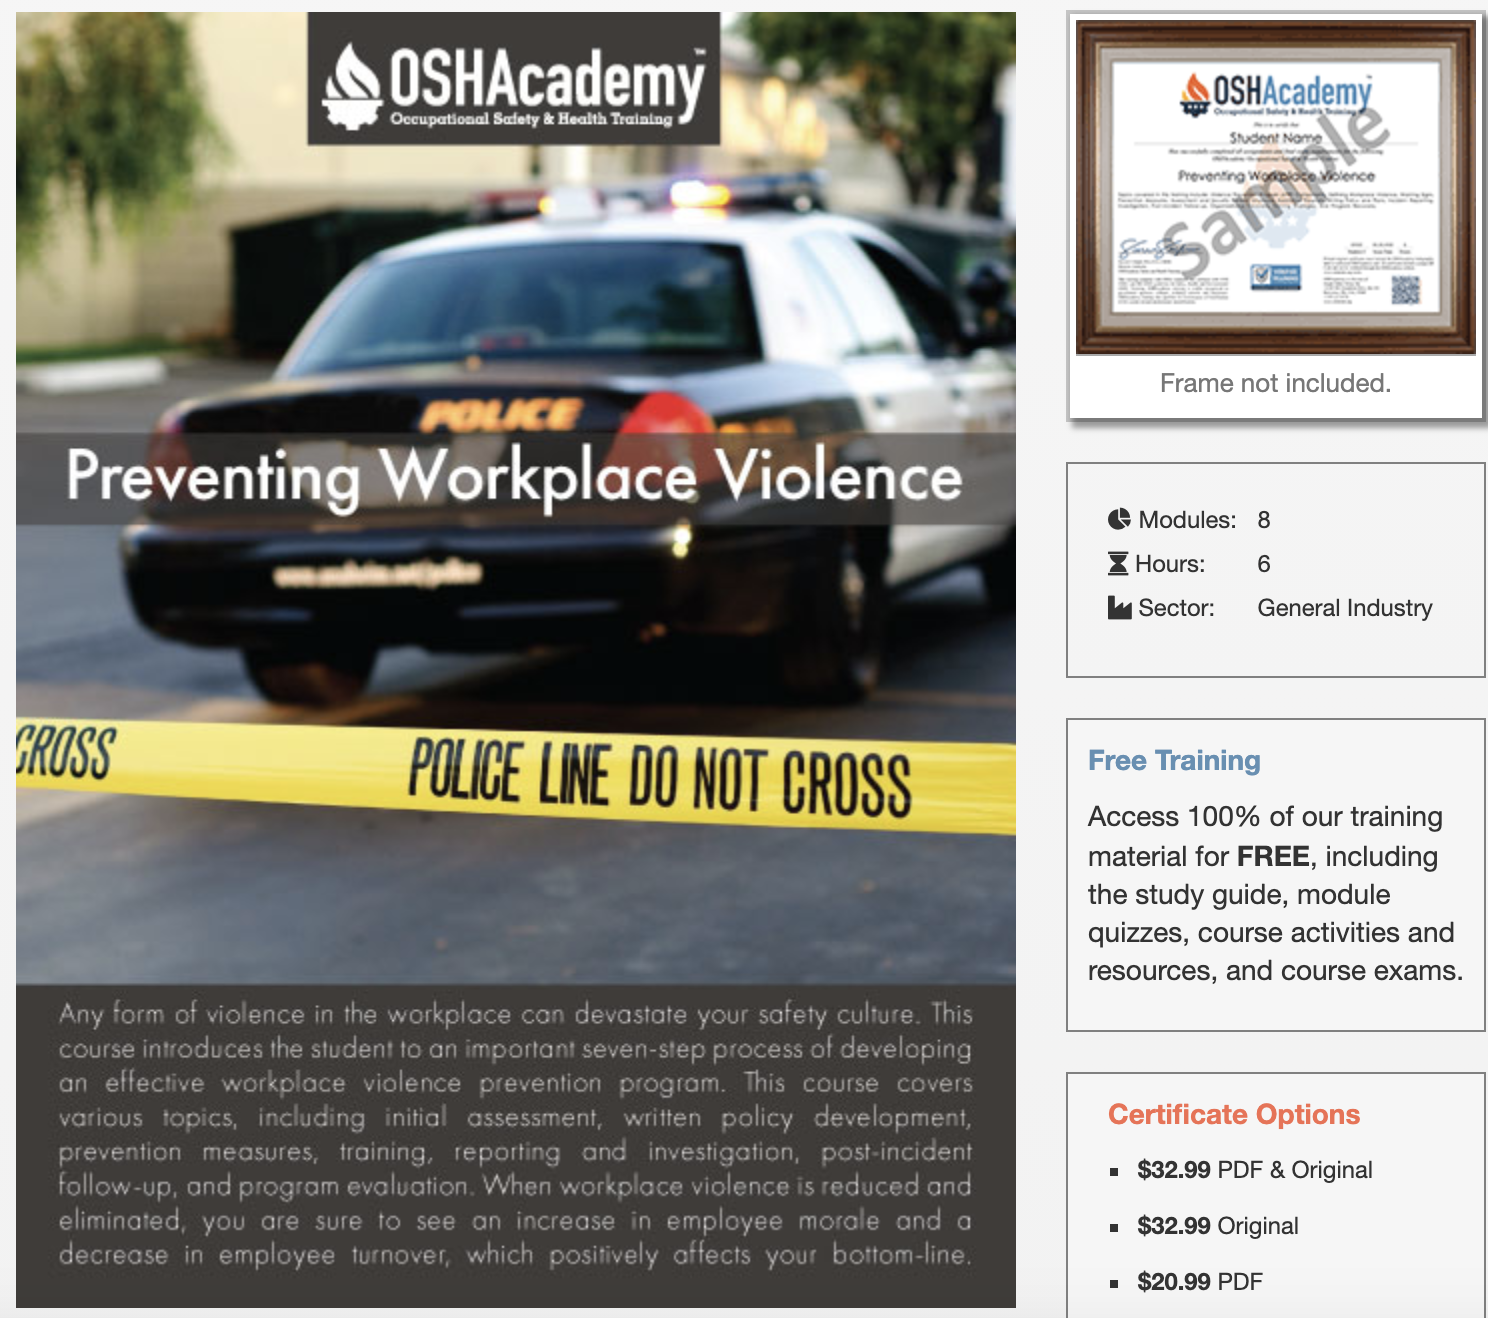 Workplace Violence Prevention Training Course - Preventing Workplace Violence from OSH Academy